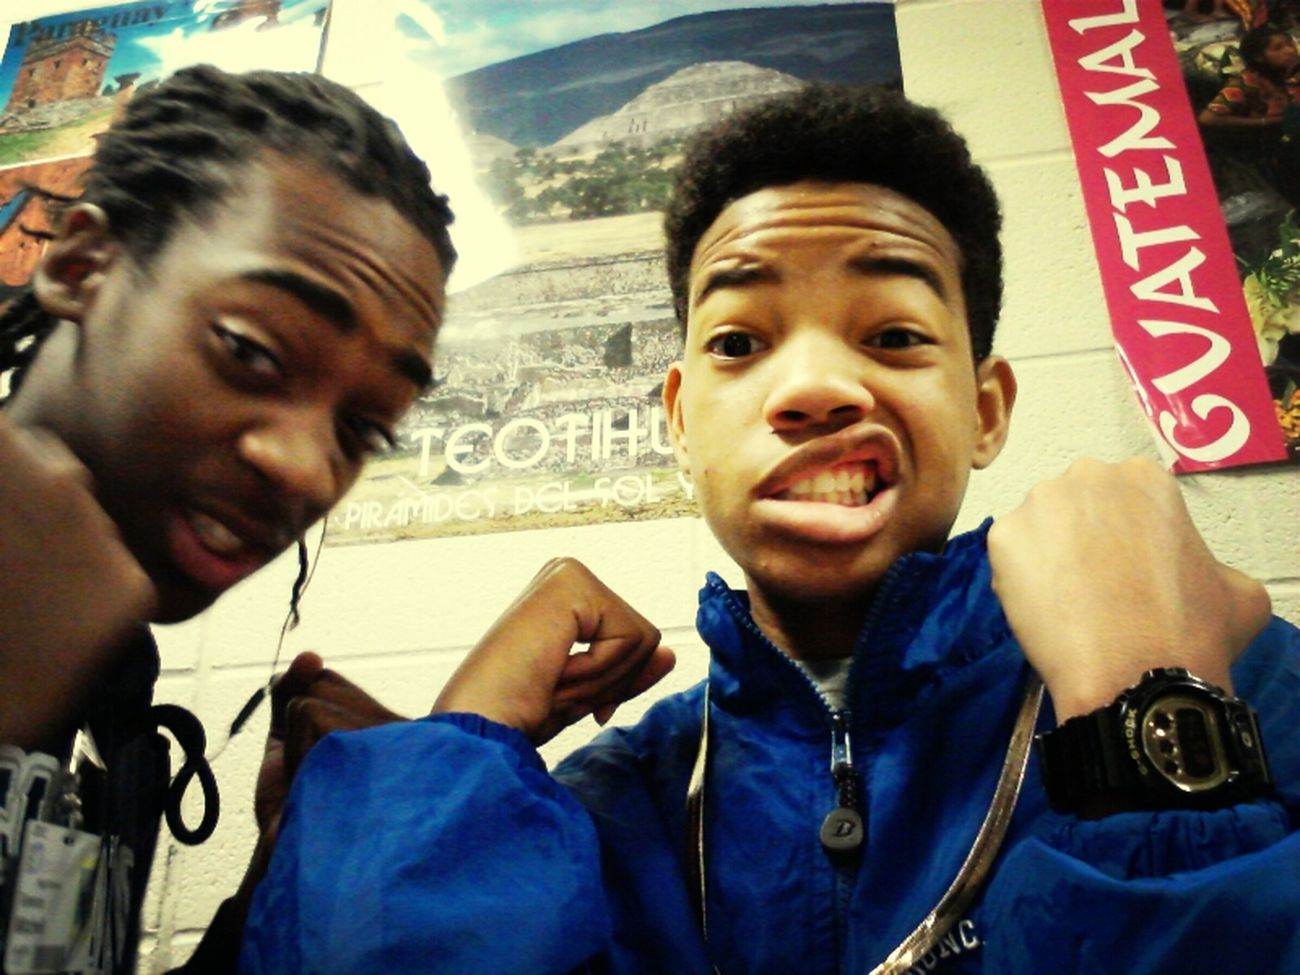 Me Nd My Nigga Tariq